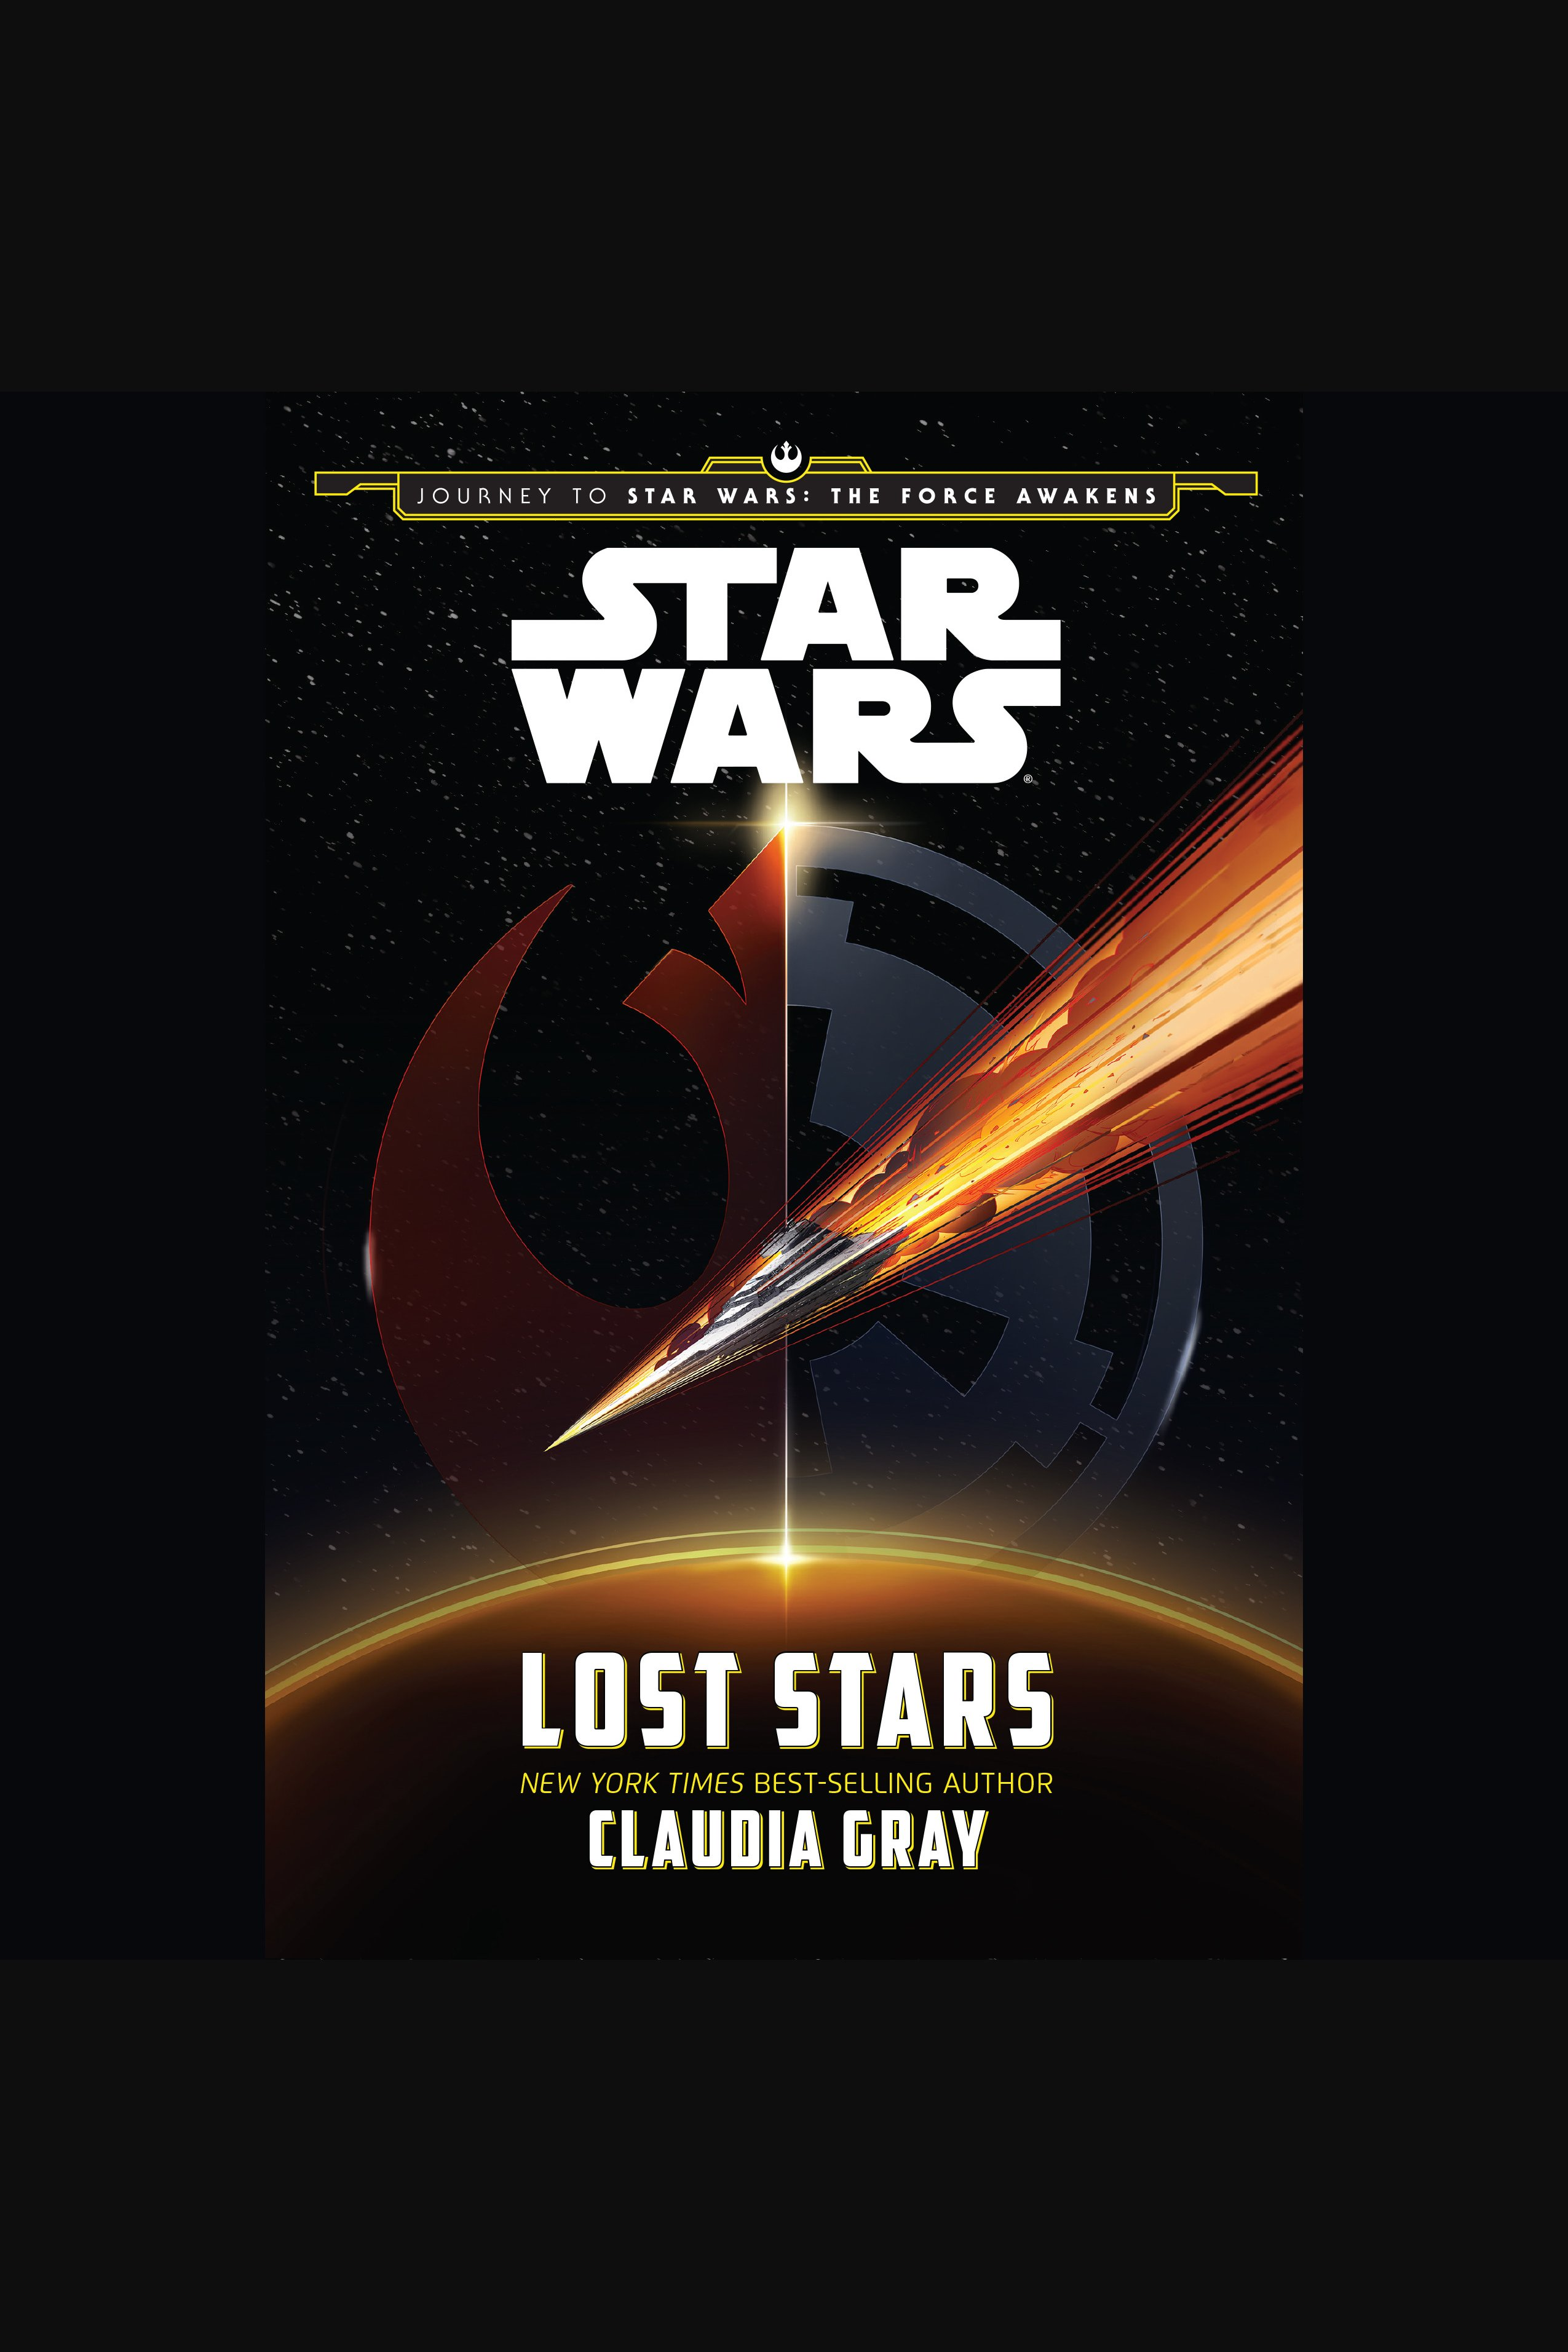 Star Wars. Lost stars cover image